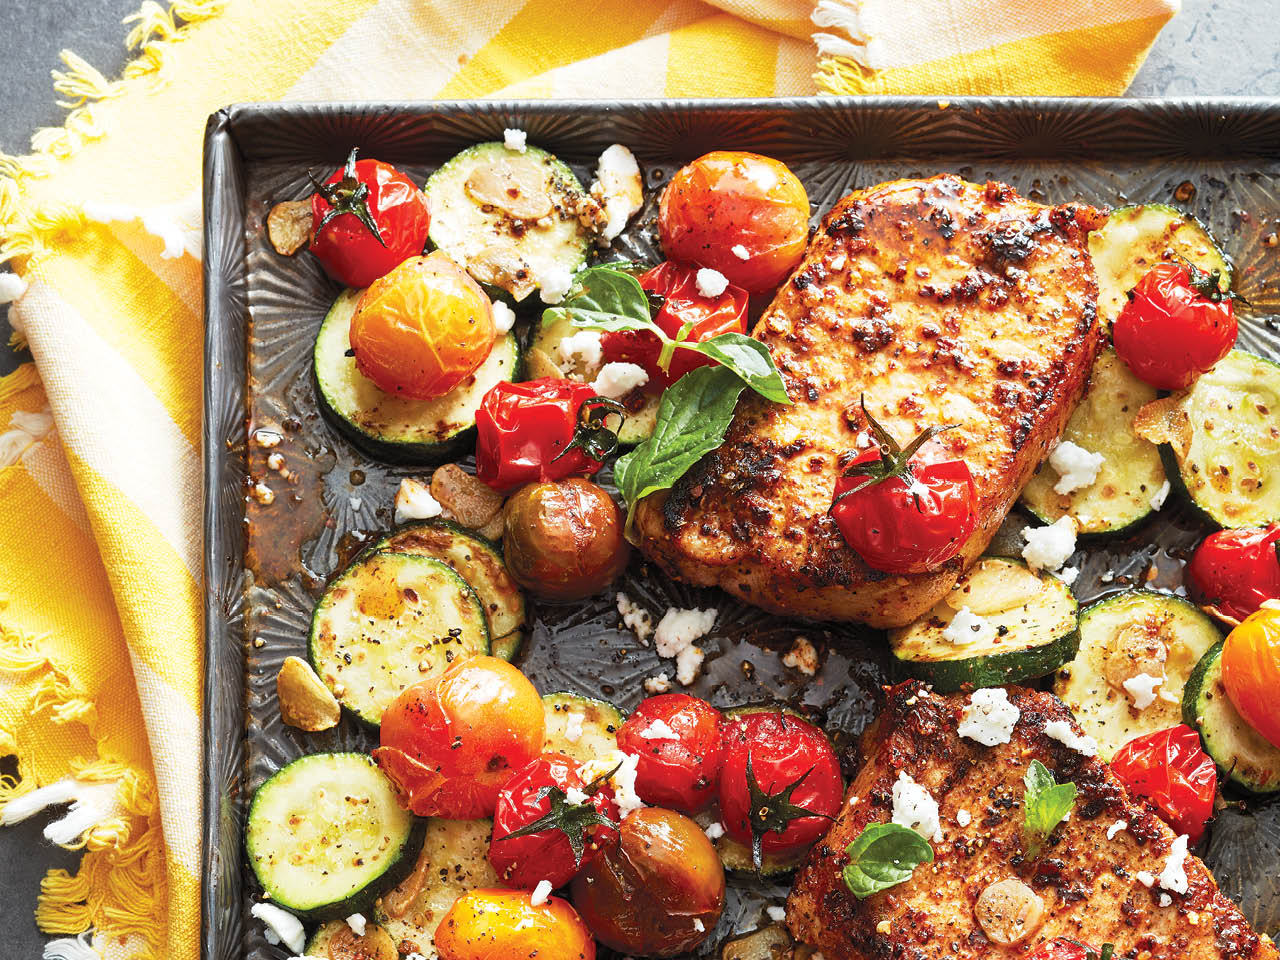 pork chop recipes: sheet pan pork chops with harissa spice